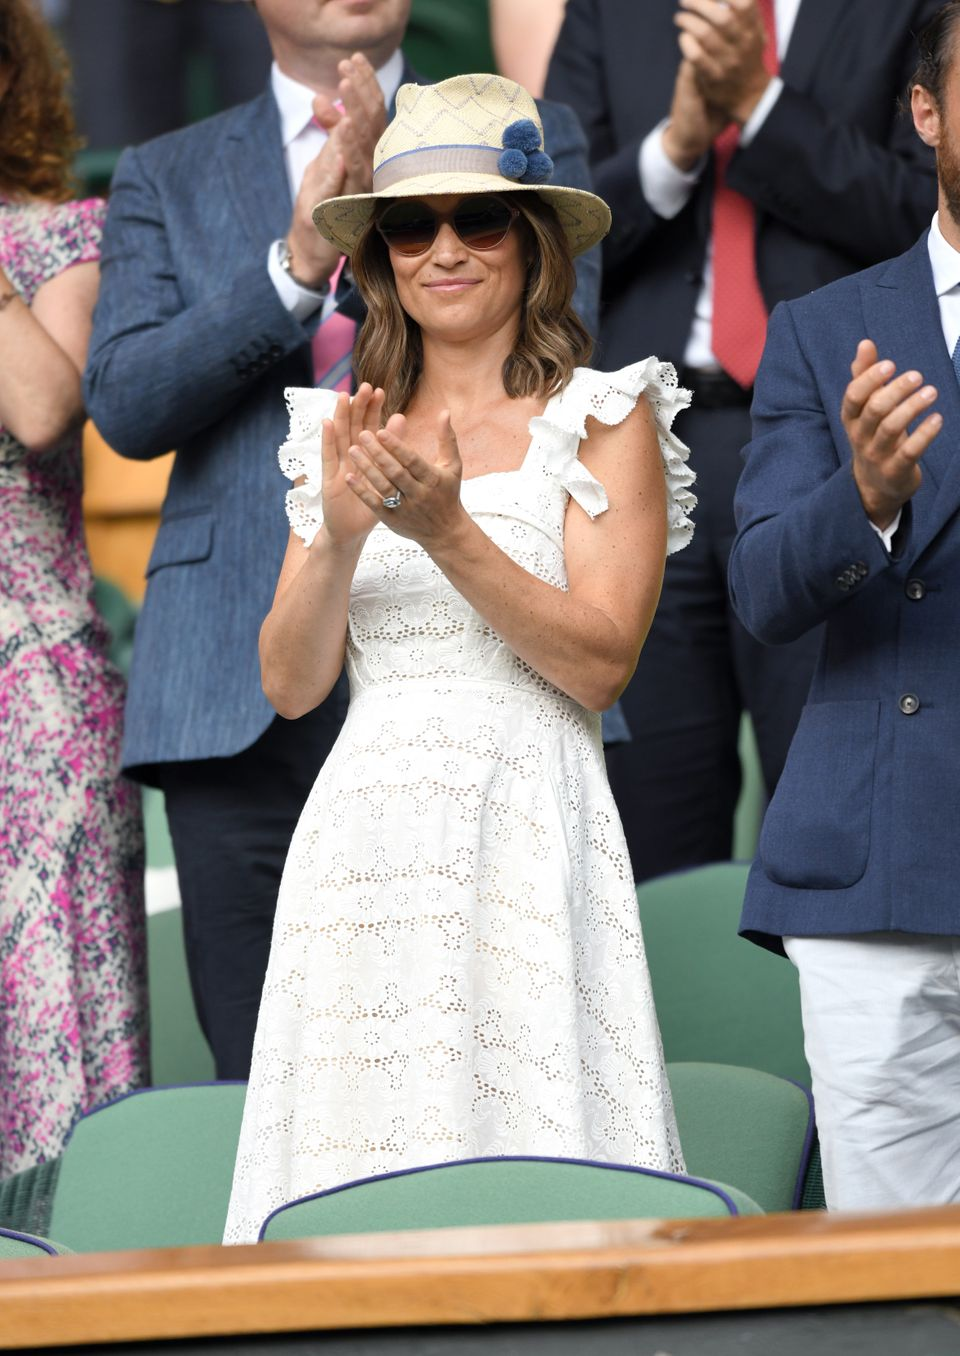 Pippa Middleton's Style Evolution Through The Years 76